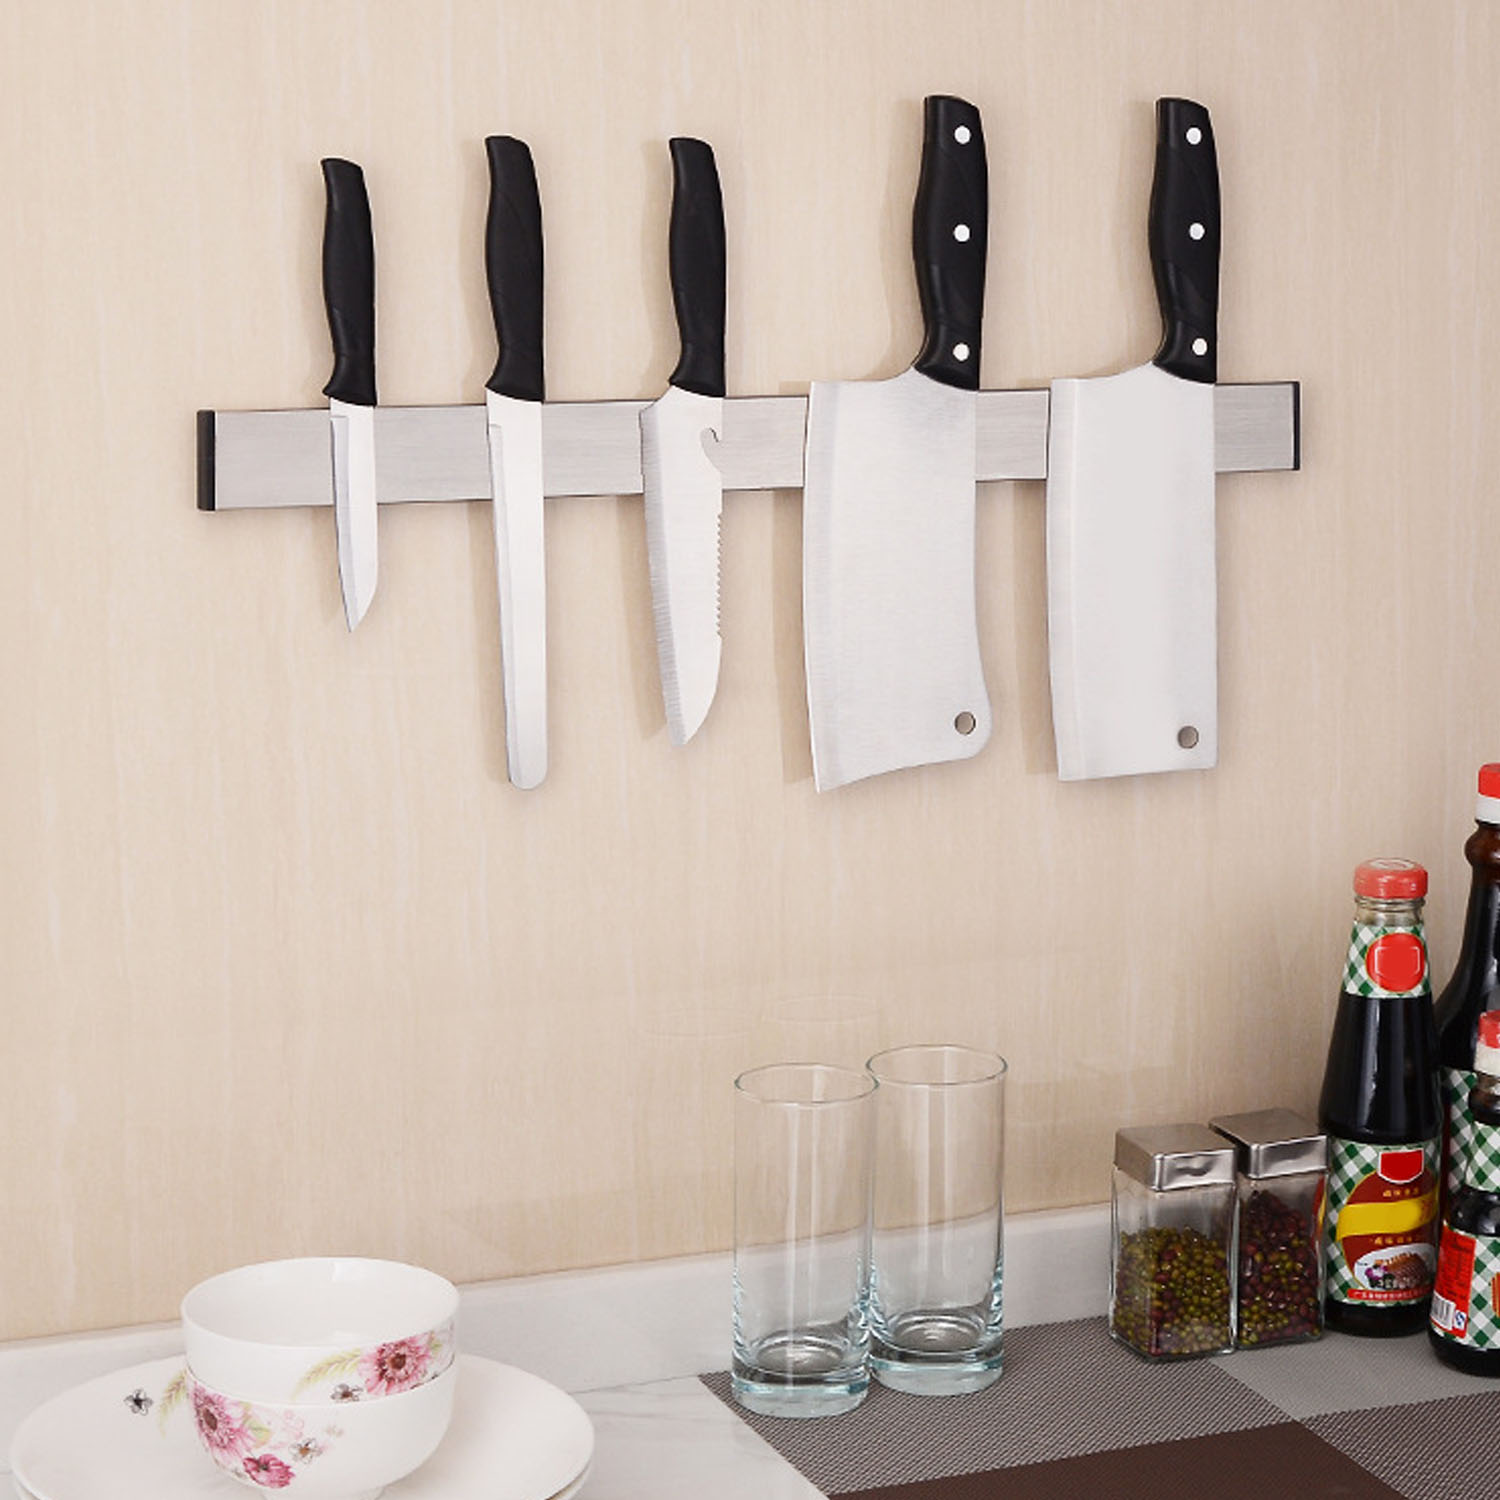 Magnetic Self adhesive 12 2 inches Length Knifes Holder Stainless Steel Block Magnet Knife Holder Rack